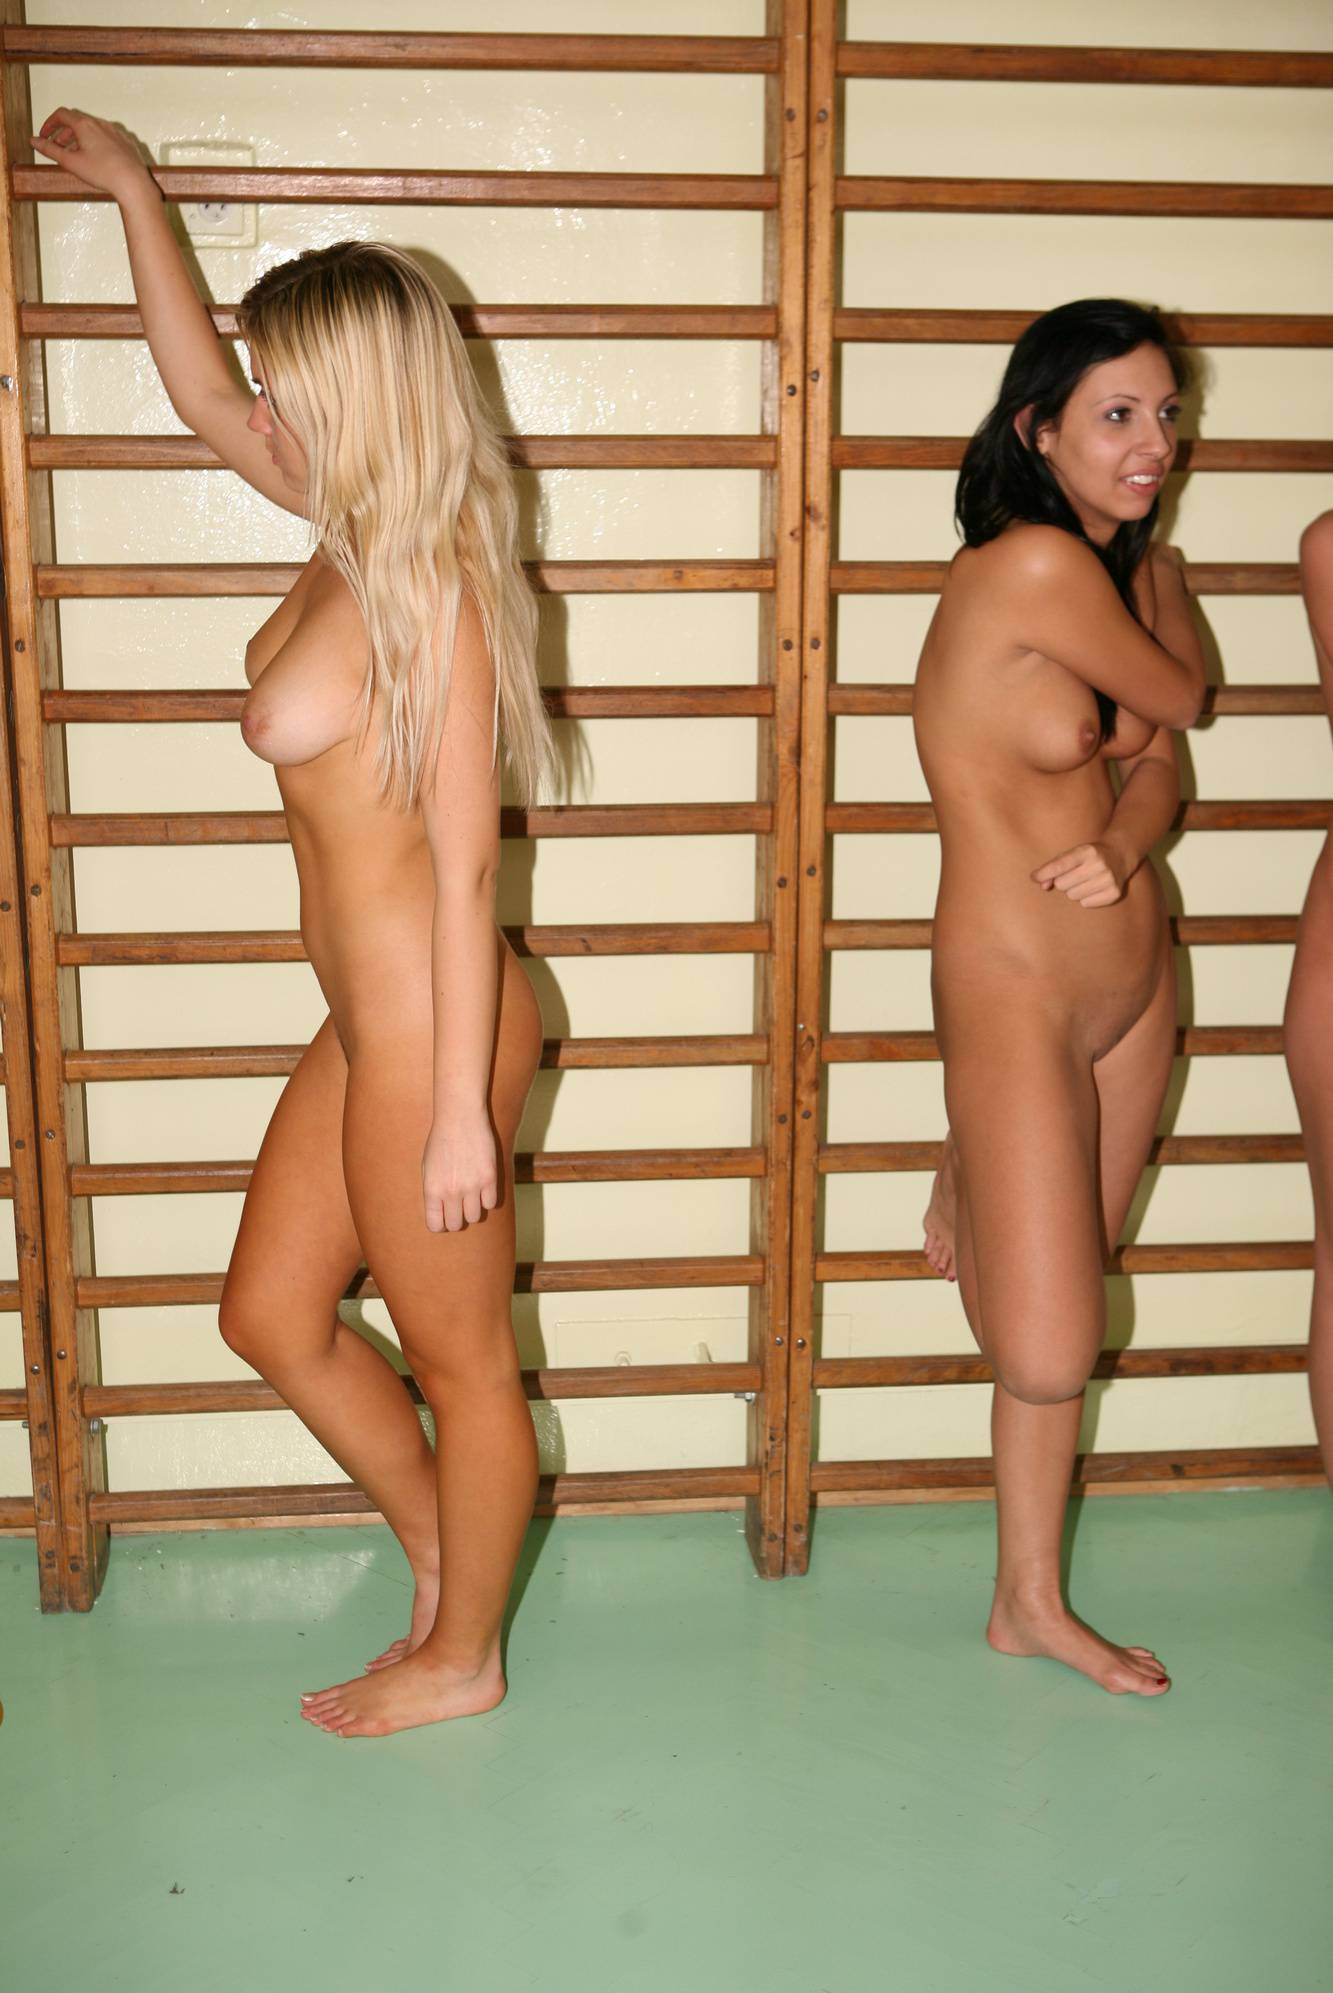 Pure Nudism Gallery-Gym Latter-Wall Profiles - 1